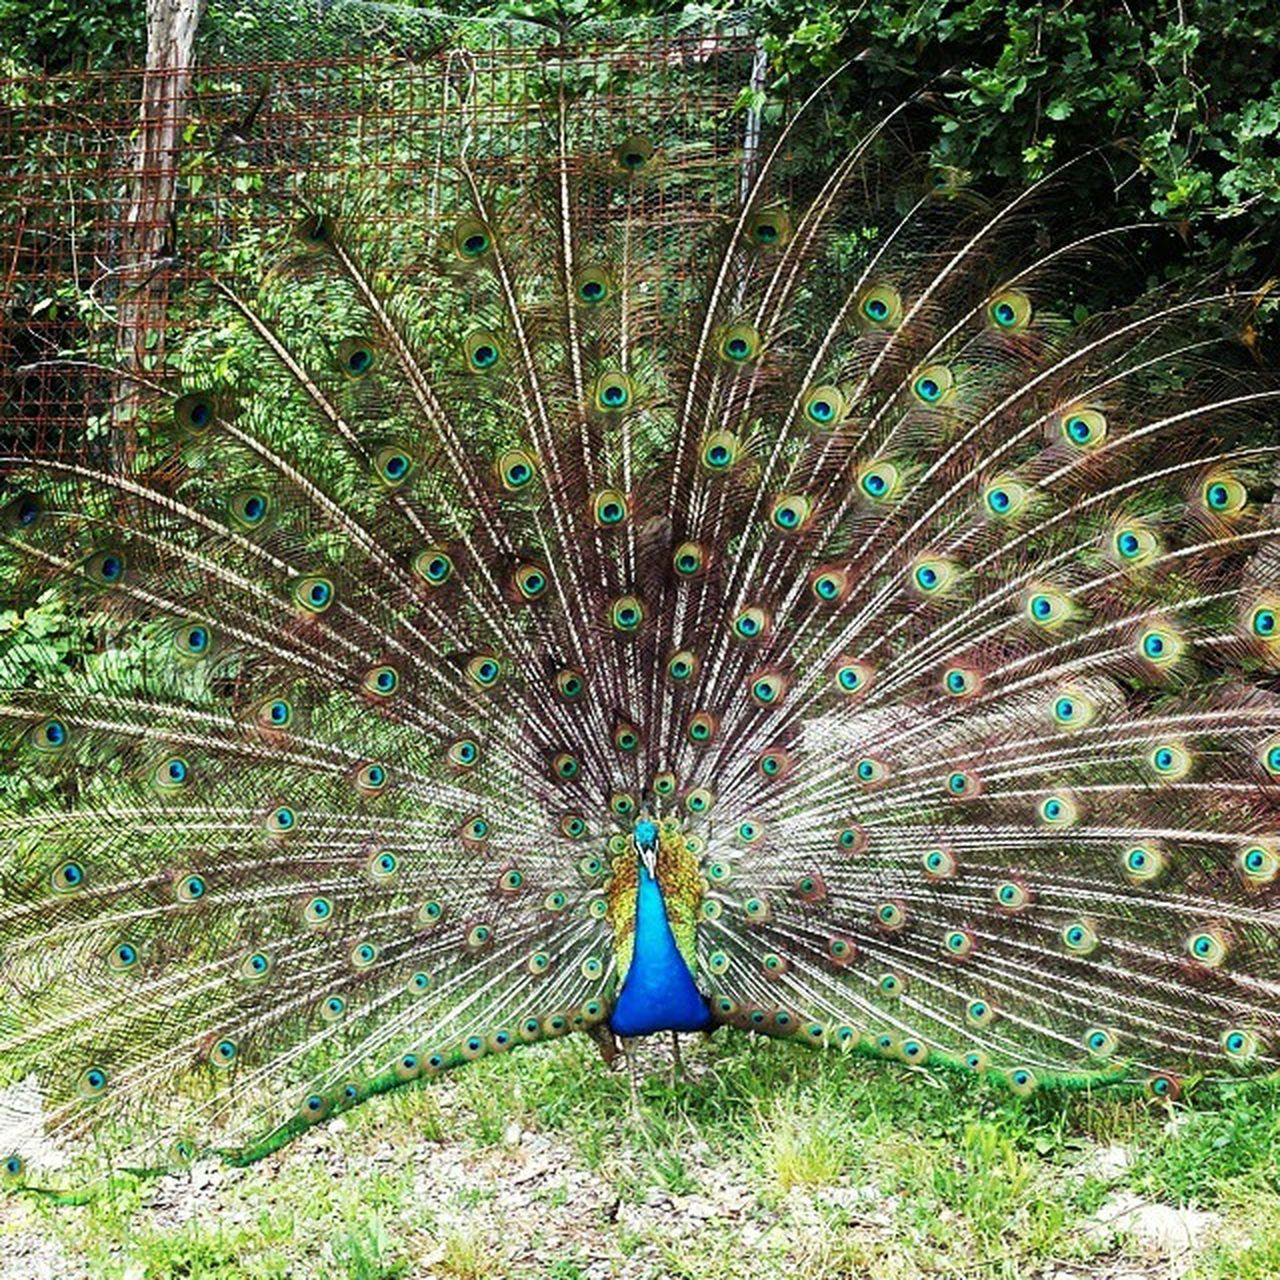 peacock, peacock feather, bird, animal themes, one animal, fanned out, animals in the wild, animal wildlife, feather, nature, day, field, outdoors, no people, beauty in nature, multi colored, close-up